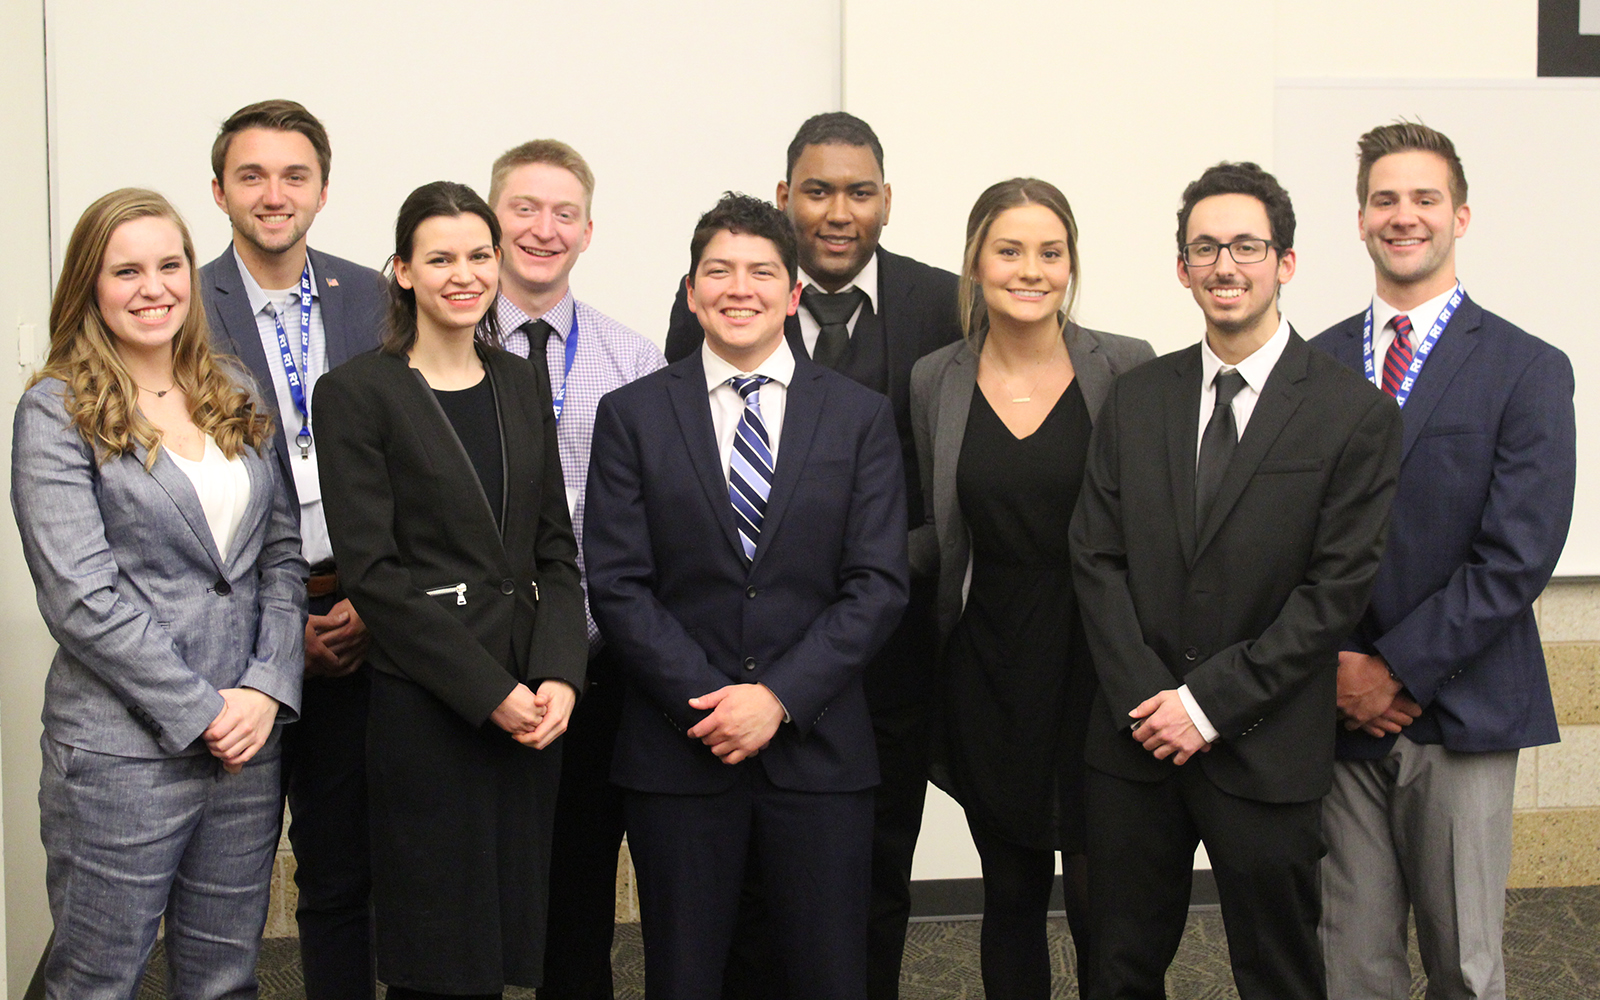 Olivet_mcgraw_school_business_competition_enactus_student_leadership_SHRM_web2.jpg